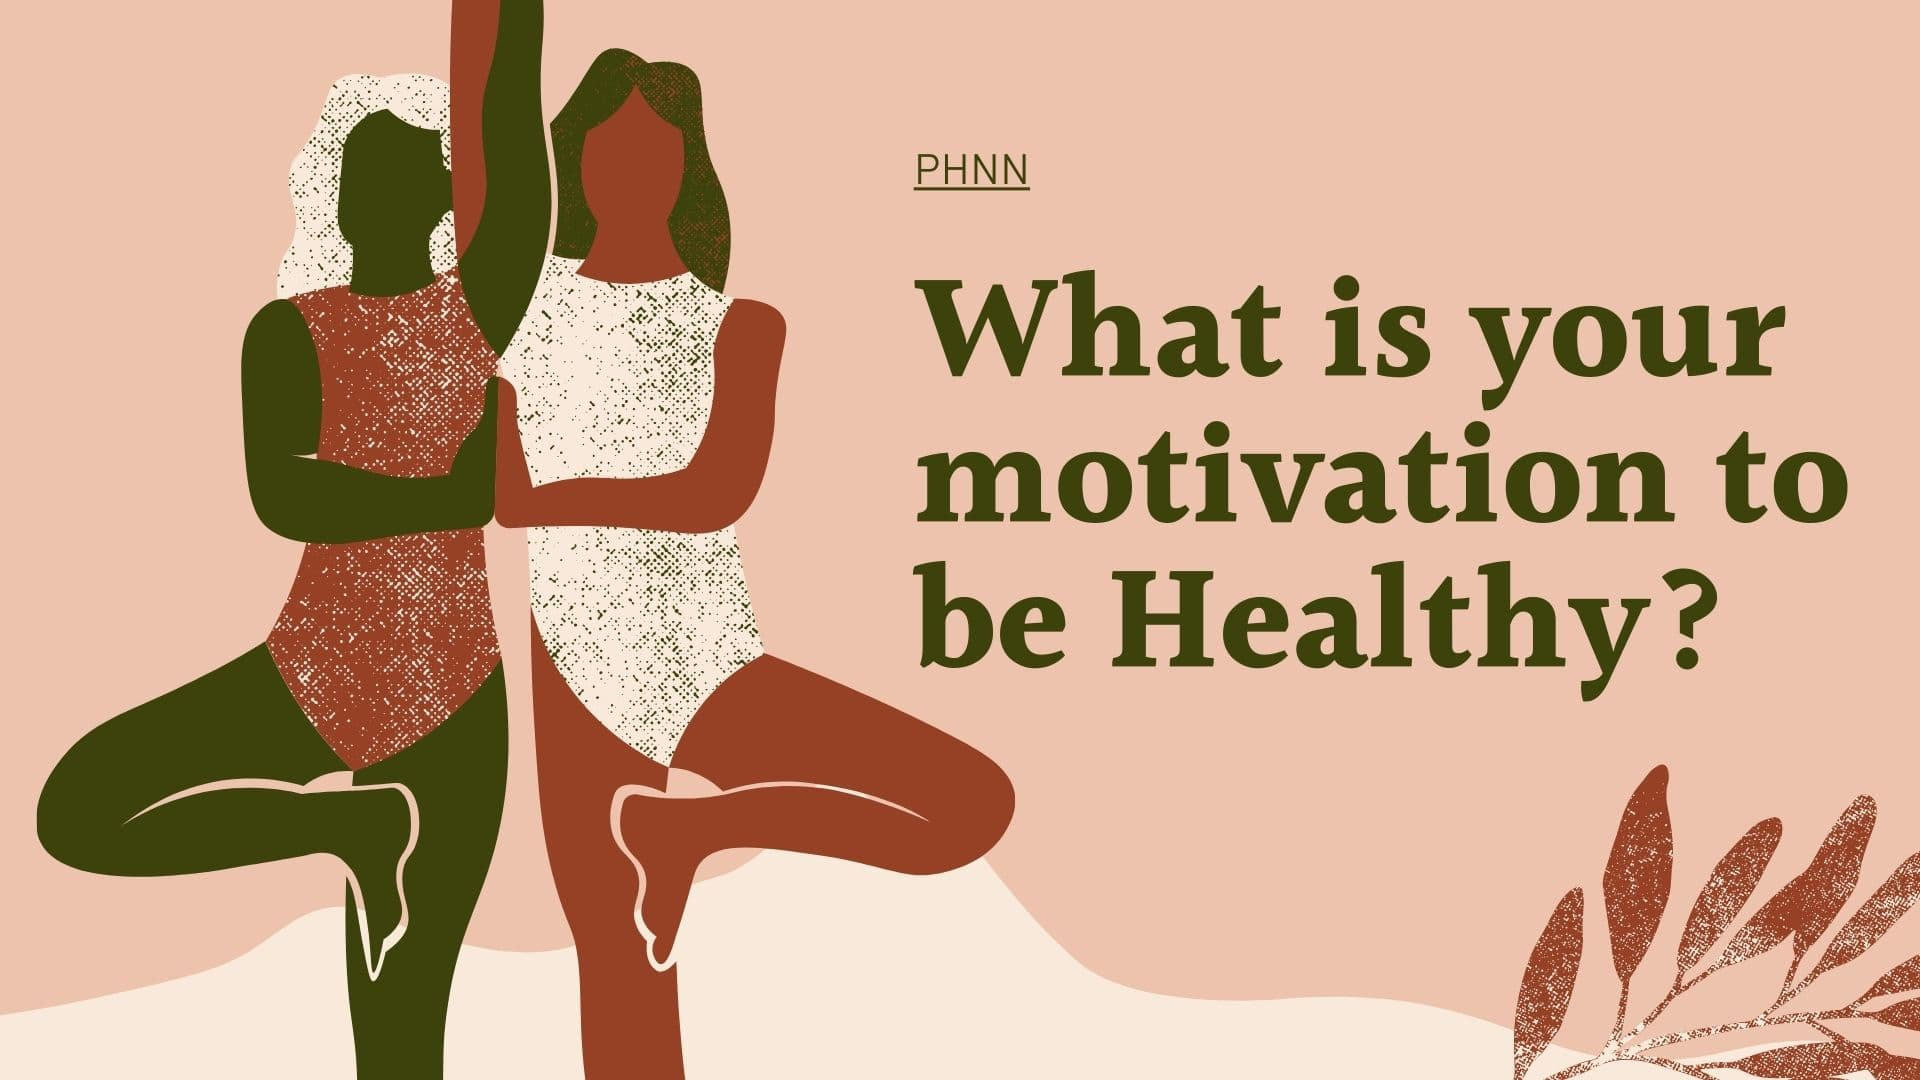 motivation to be Healthy